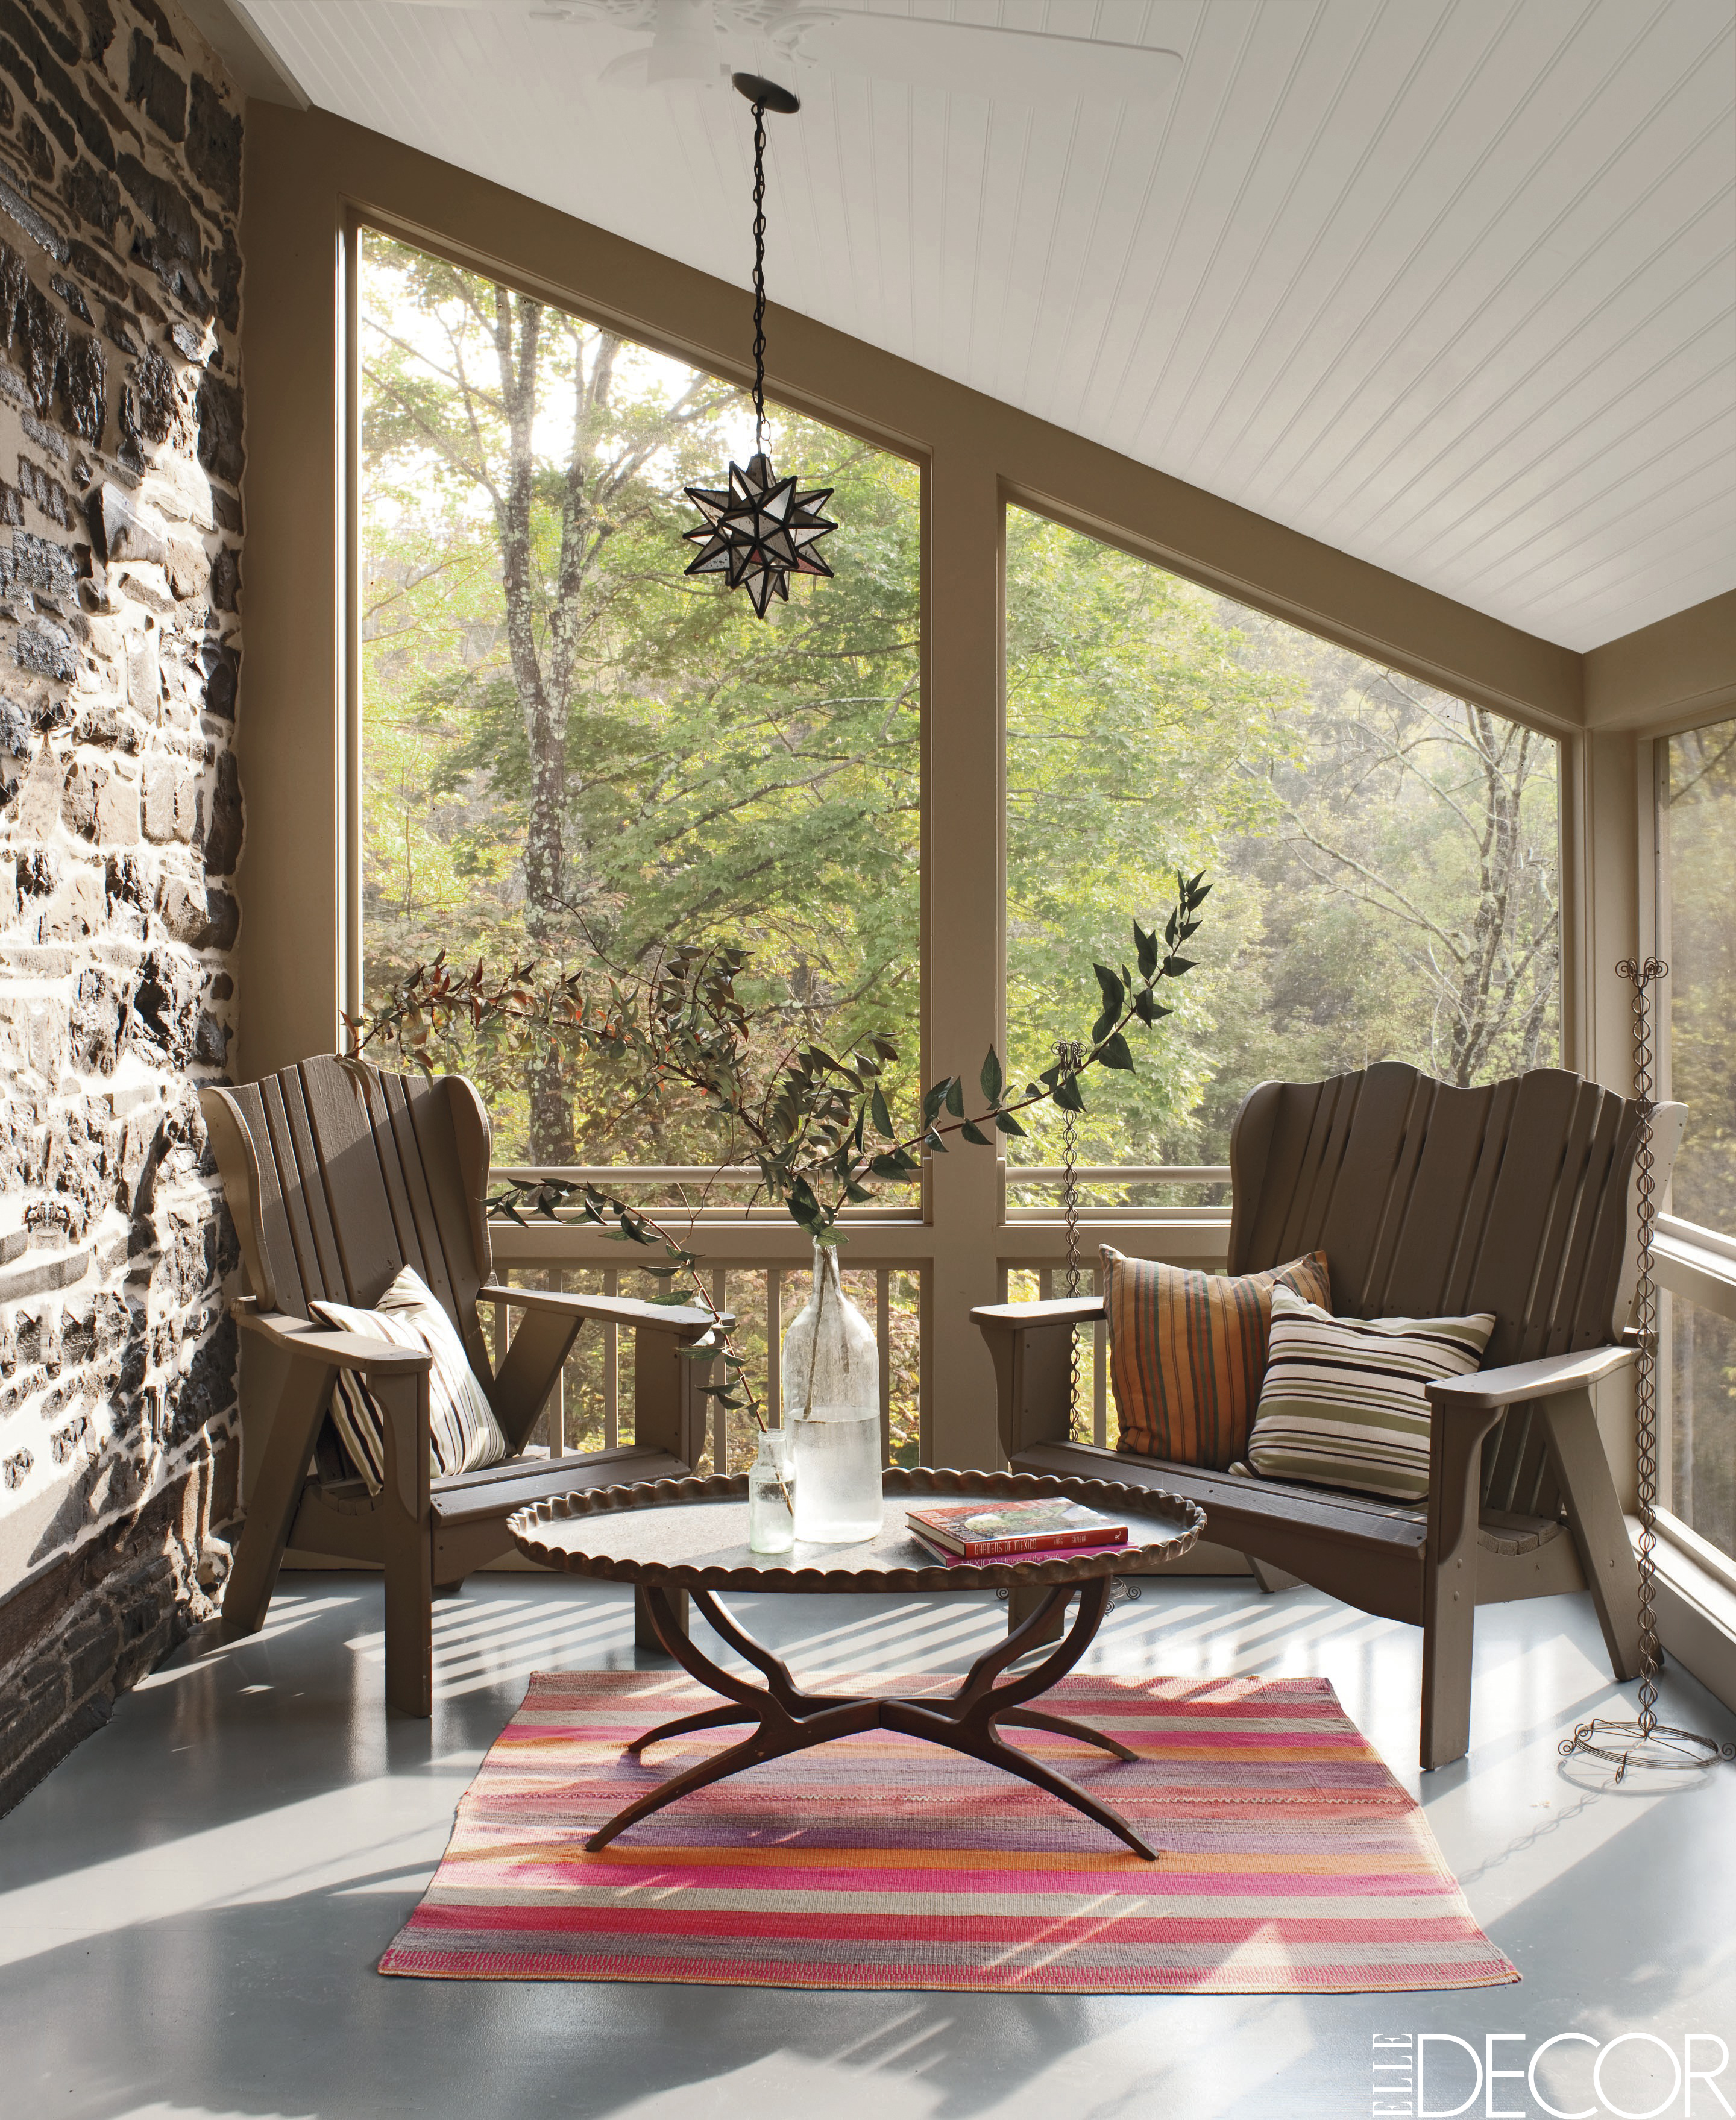 50 Stunning Sunroom Design Ideas Ultimate Home Ideas: 20 Porch Design Ideas For Relaxing Outdoor Spaces